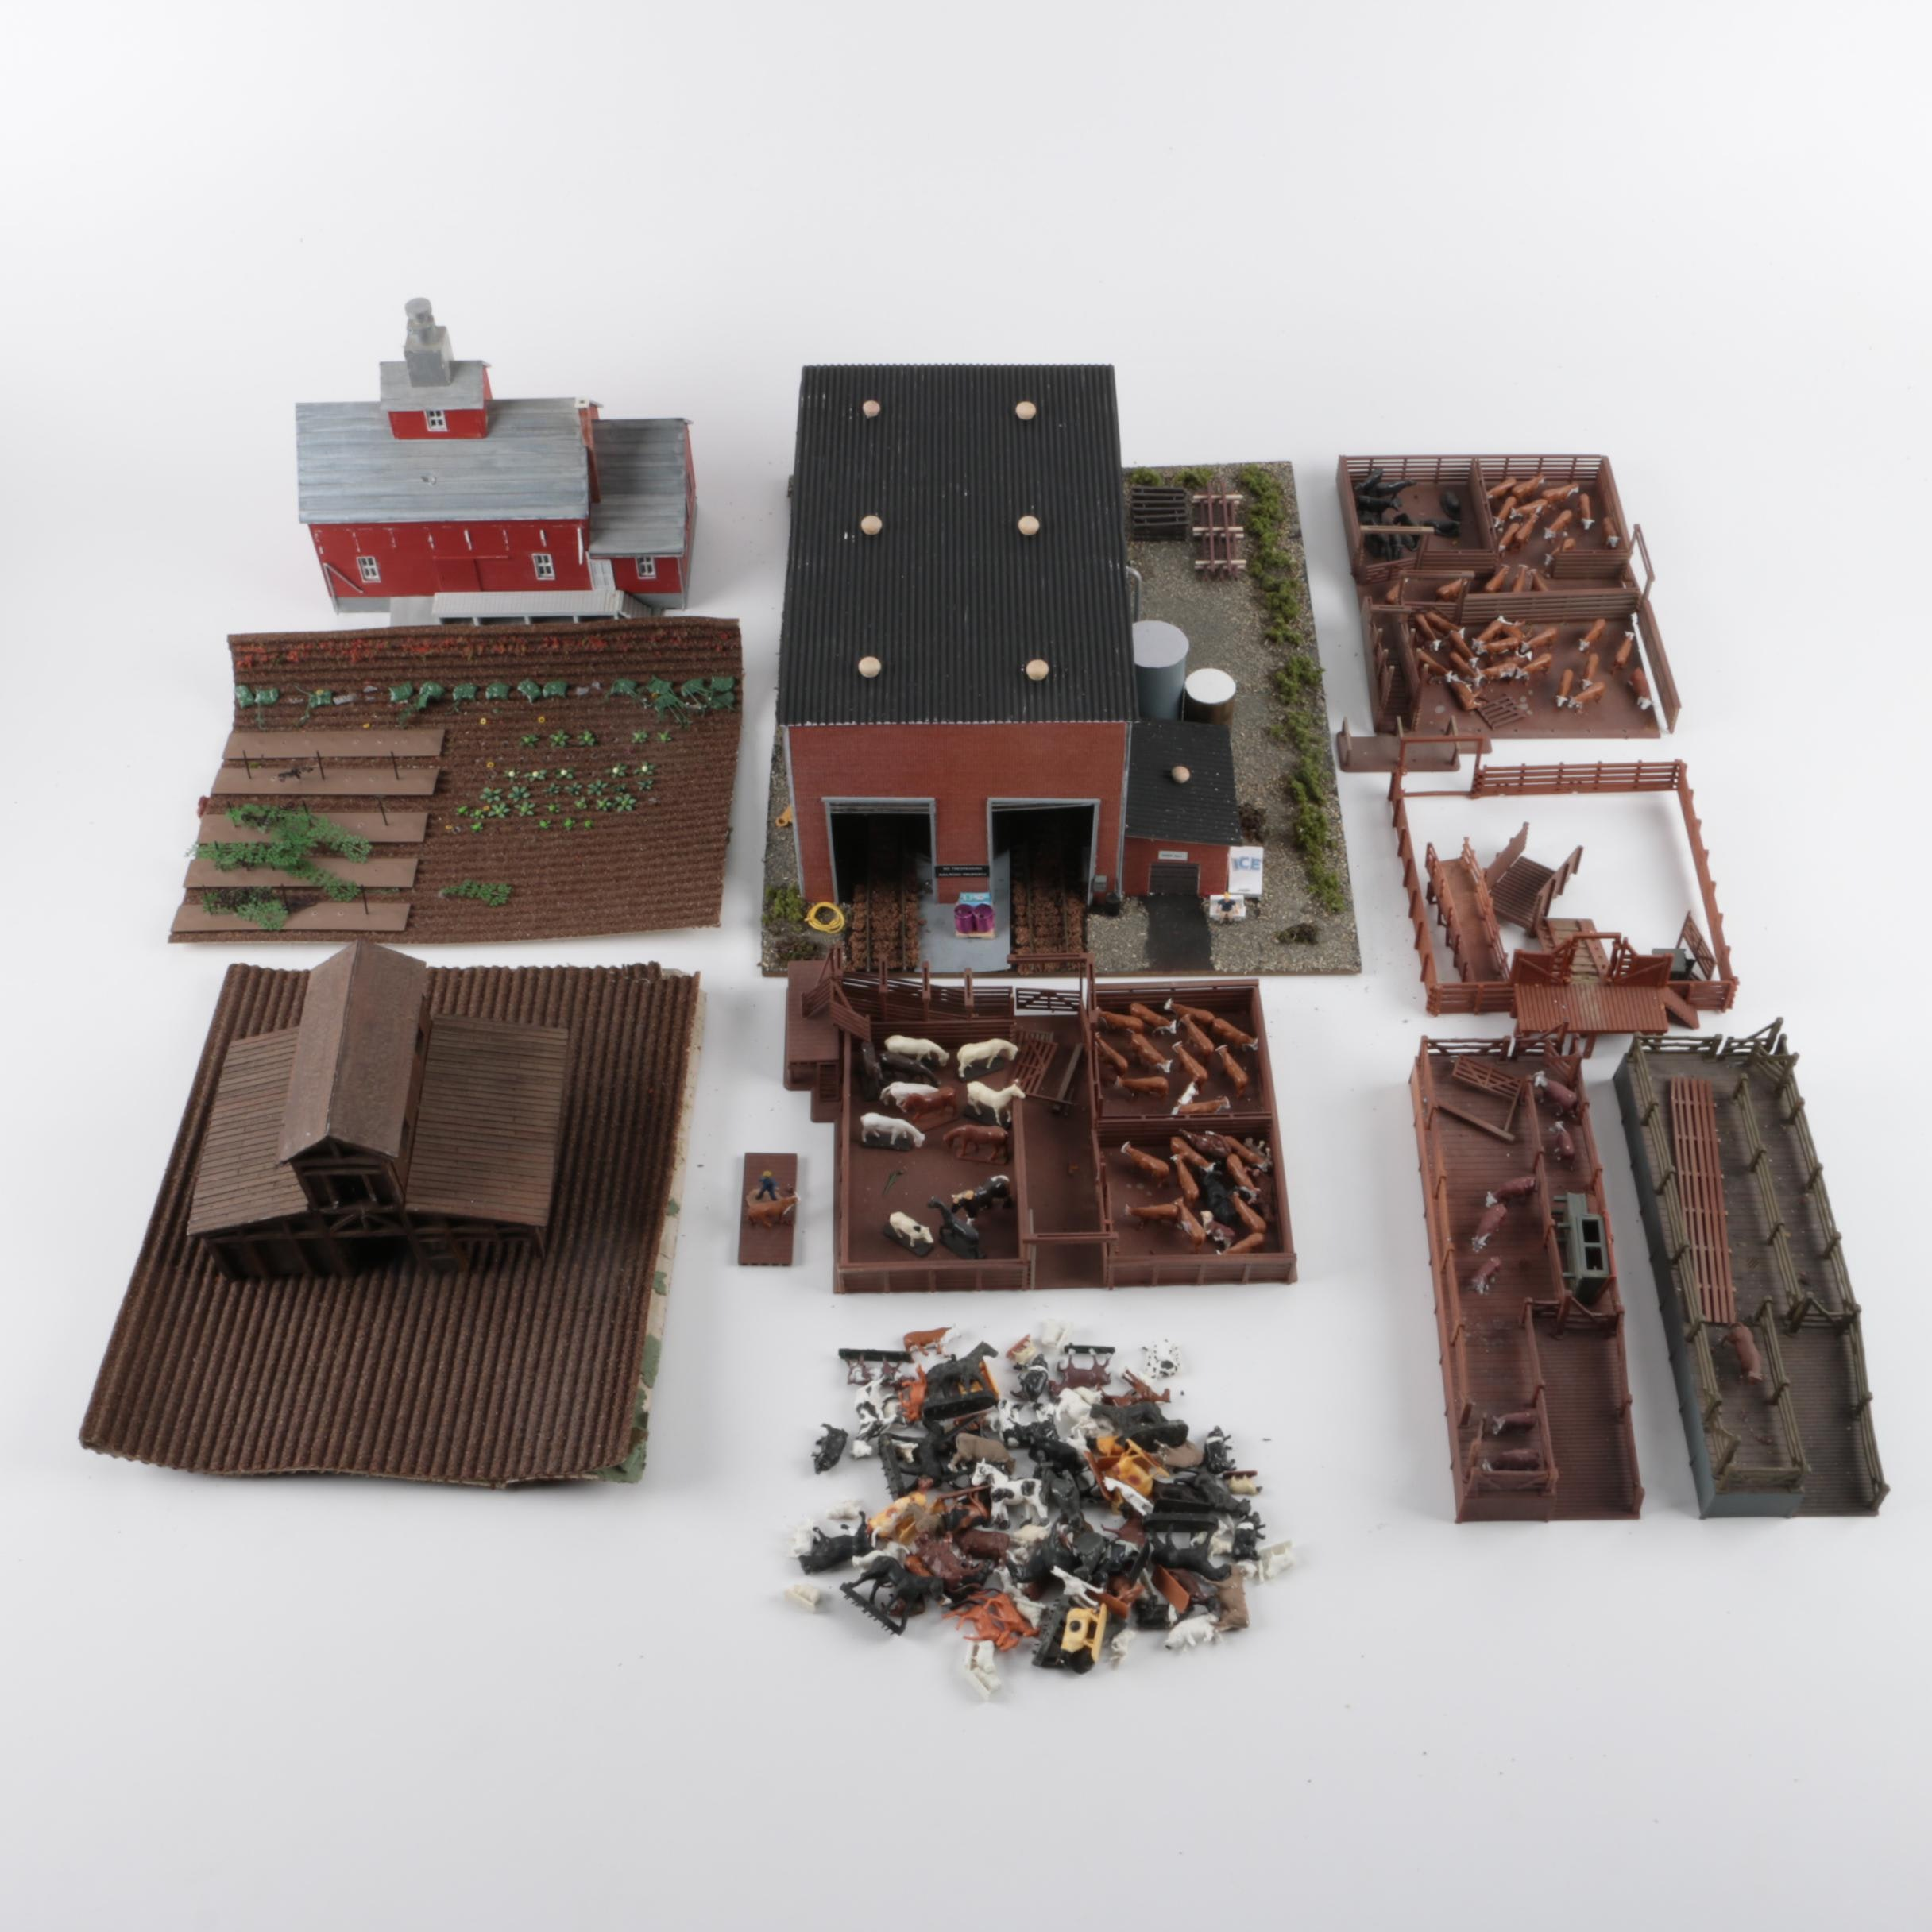 Collection of Rural Buildings and Livestock for Model Railroads